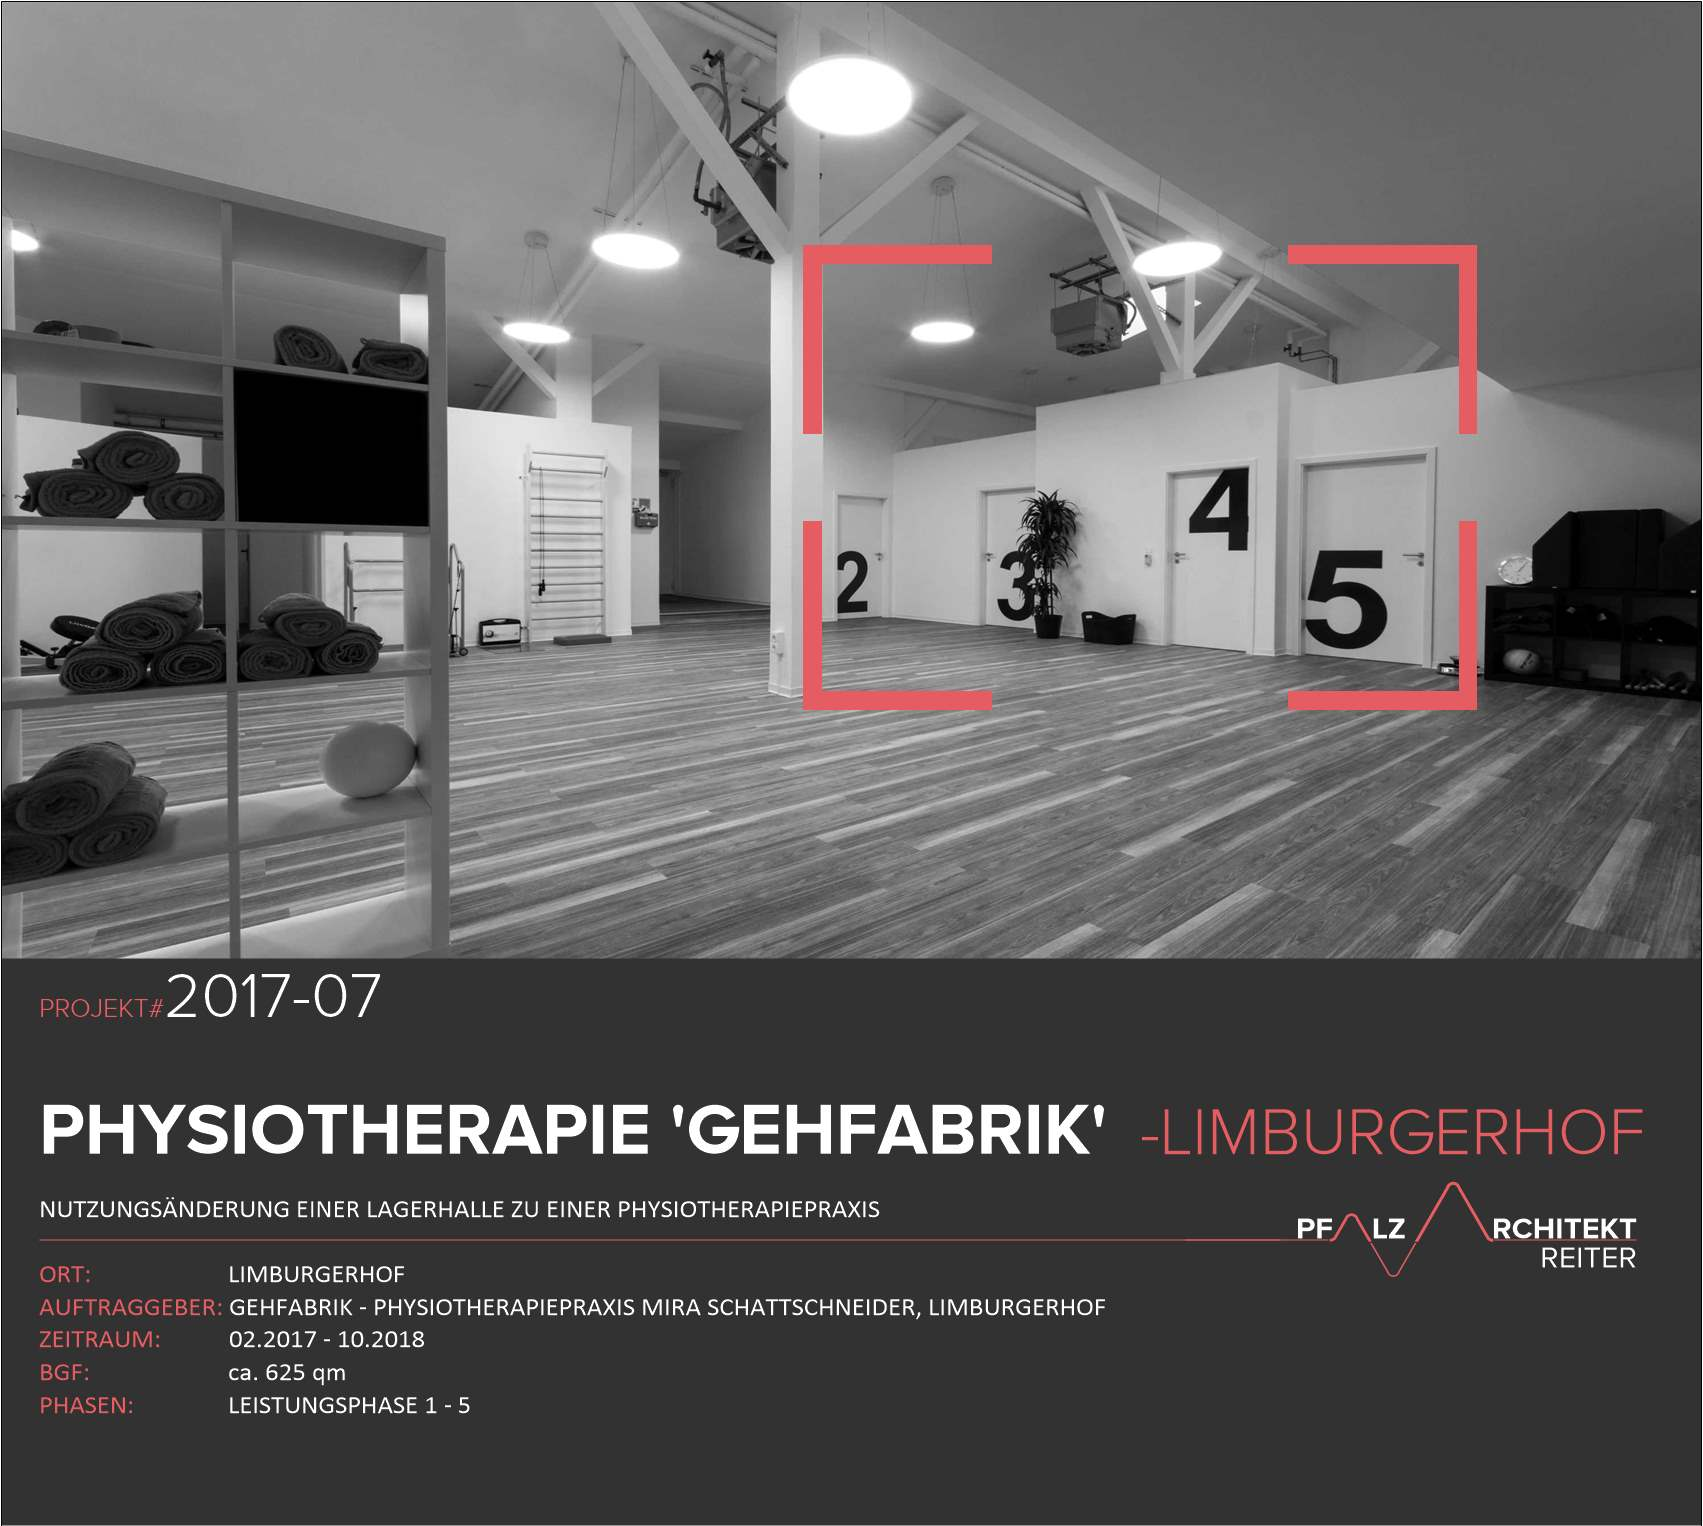 2017 07 Physiotherapie Gehfabrik header